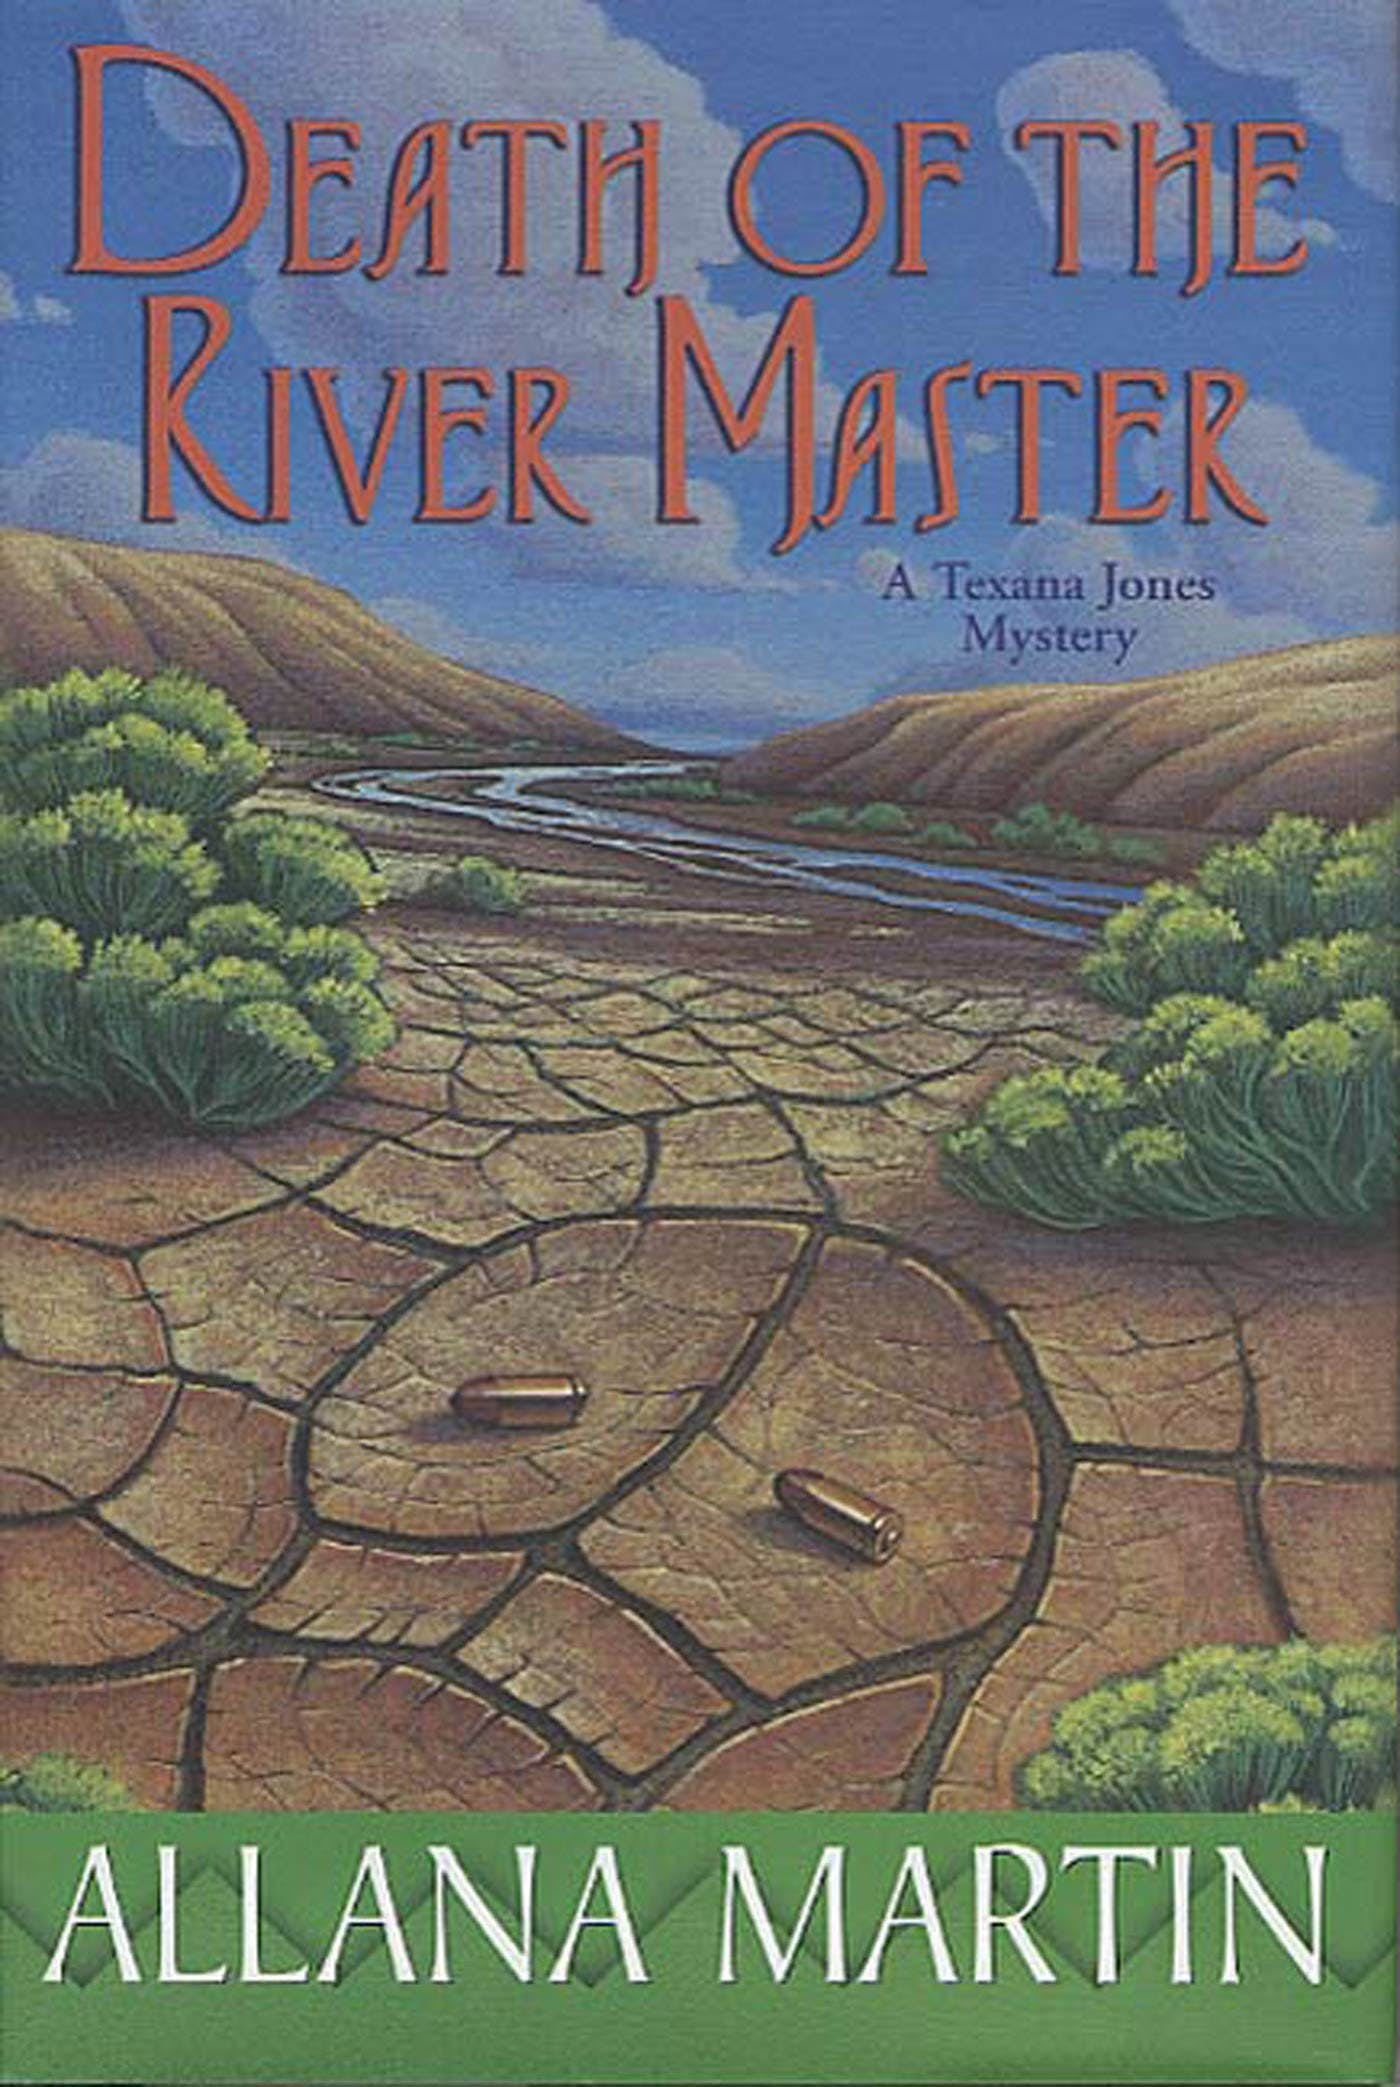 Image of Death of the River Master